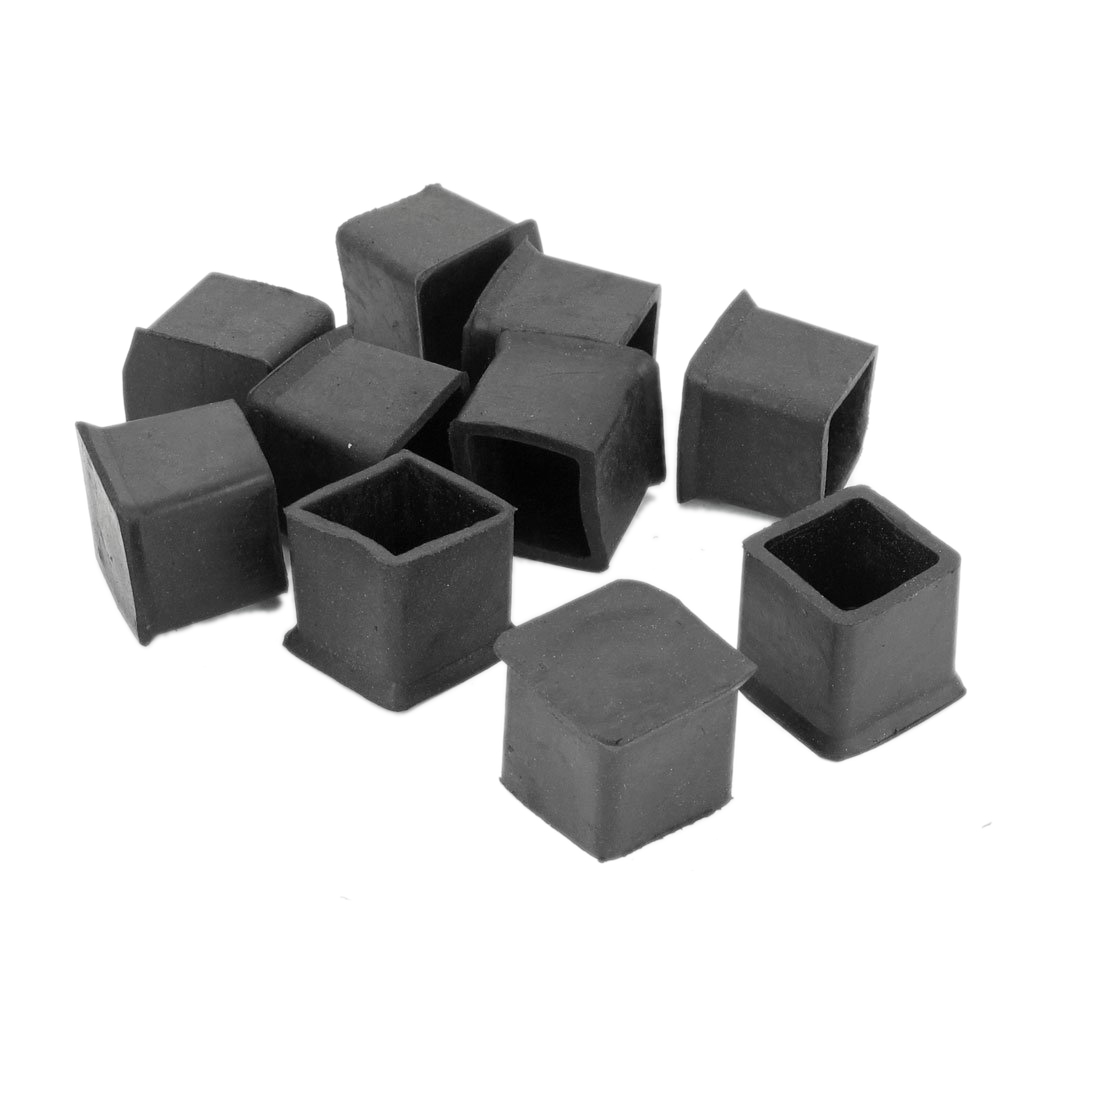 HGHO-10 Pcs Rubber 25mm x 25mm Furniture Chair Legs Covers Protectors